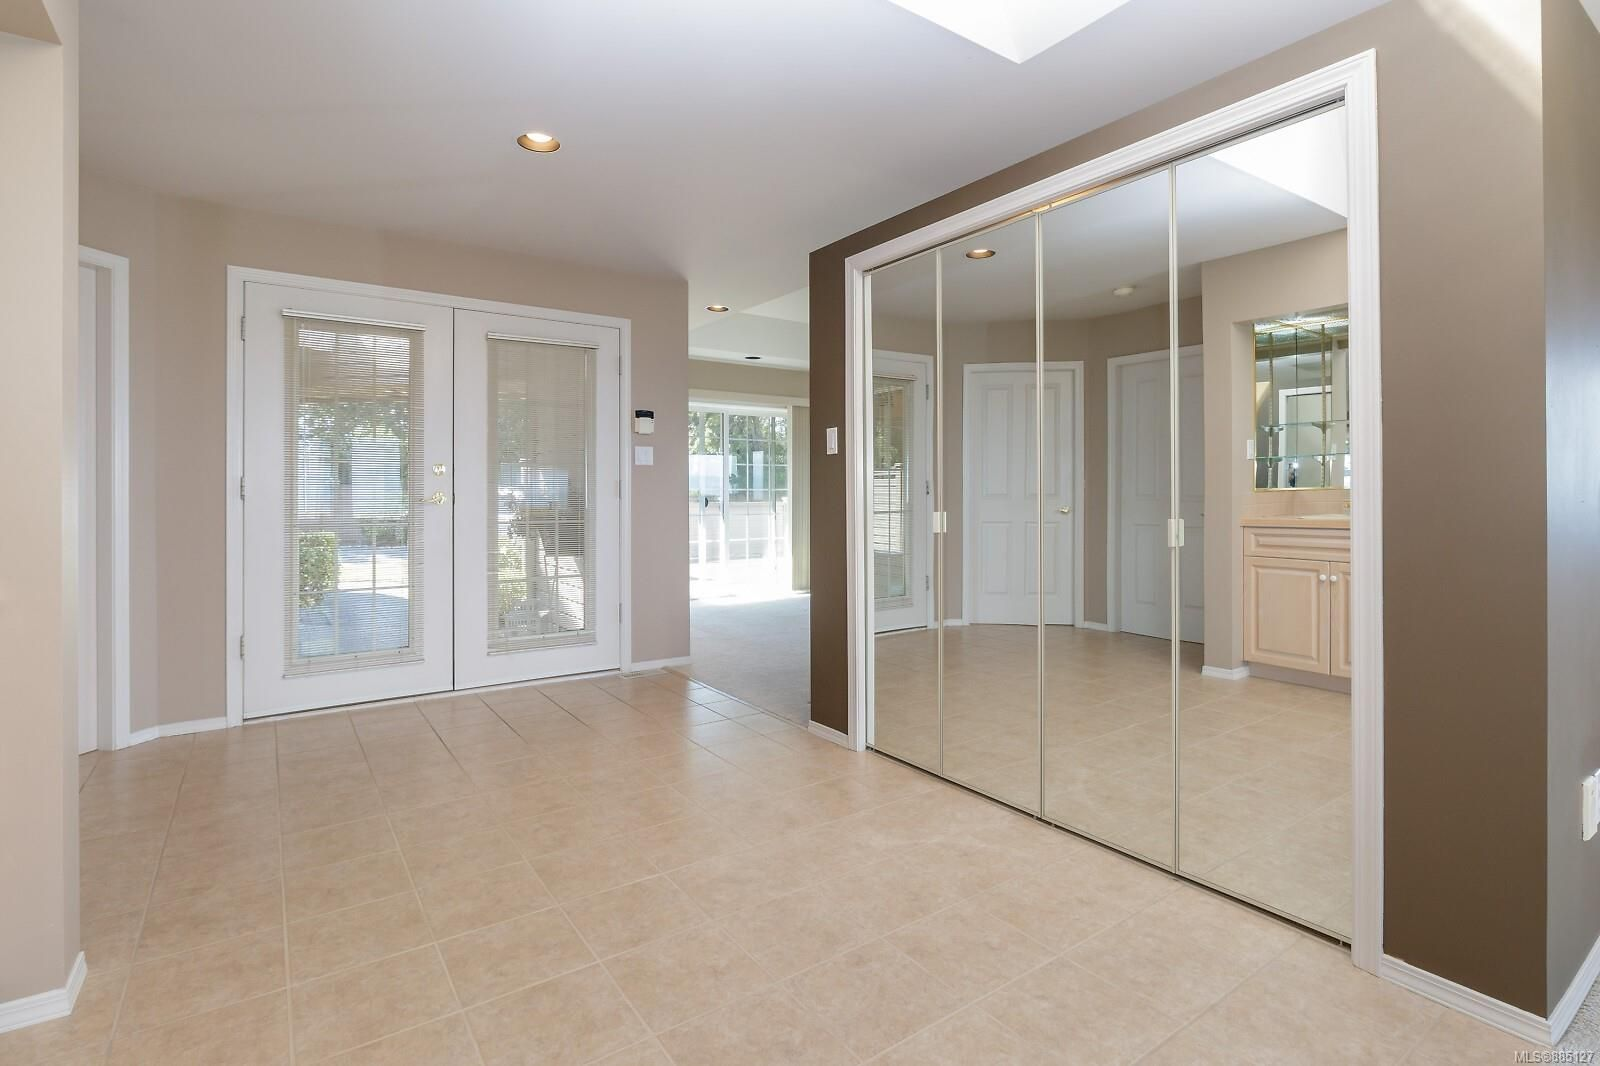 Photo 19: Photos: 26 529 Johnstone Rd in : PQ French Creek Row/Townhouse for sale (Parksville/Qualicum)  : MLS®# 885127